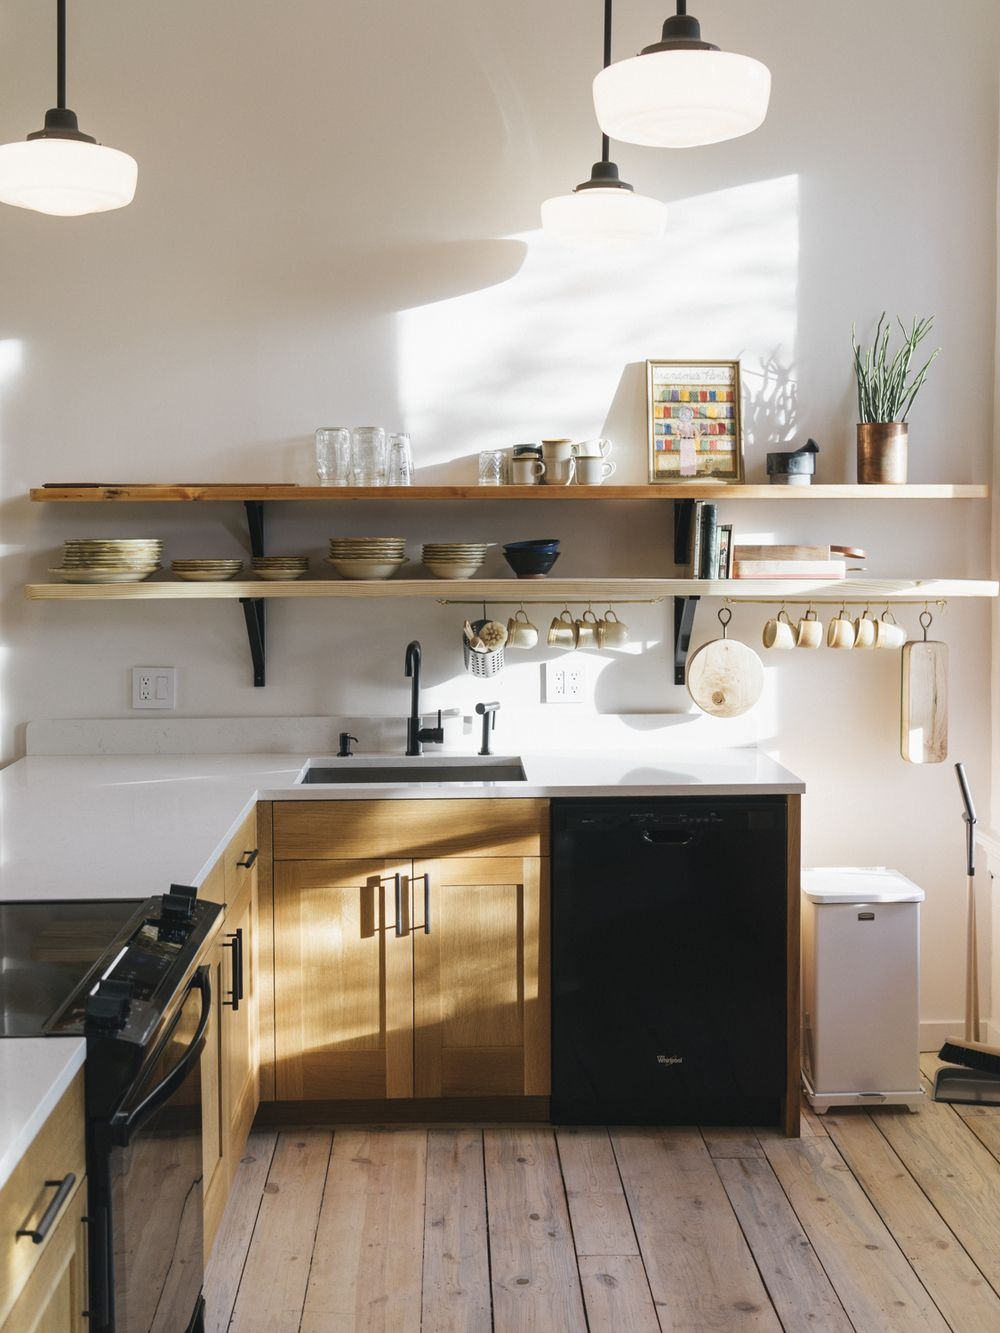 The Incredible Kitchen Cabinets Designed And Built By Ben Klebba Of Phloem Studio Communal Kitchen Kitchen Inspirations Kitchen Remodel